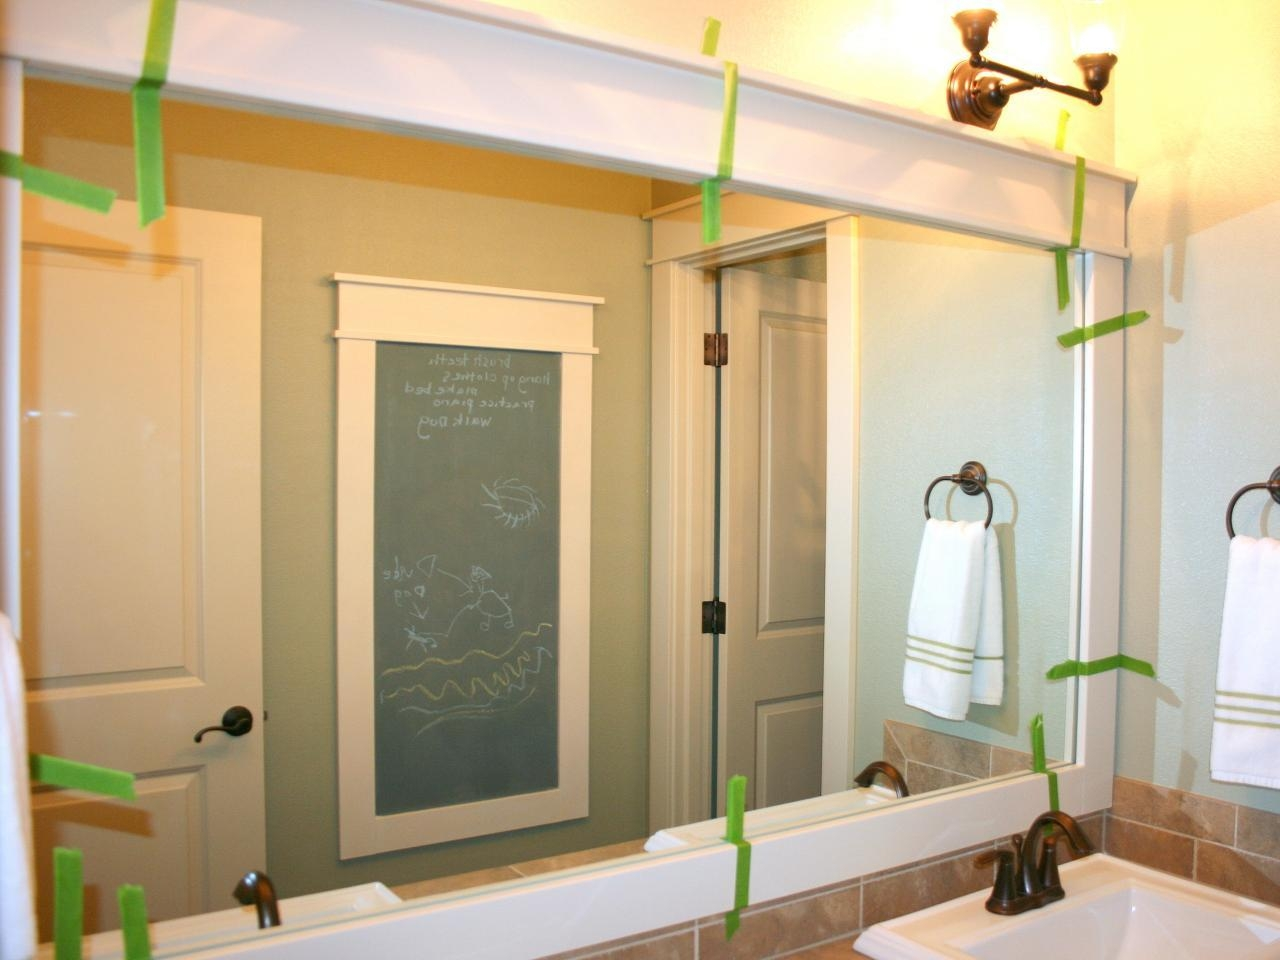 How To Frame A Mirror | Hgtv Pertaining To Large Bathroom Wall Mirrors (Image 15 of 20)